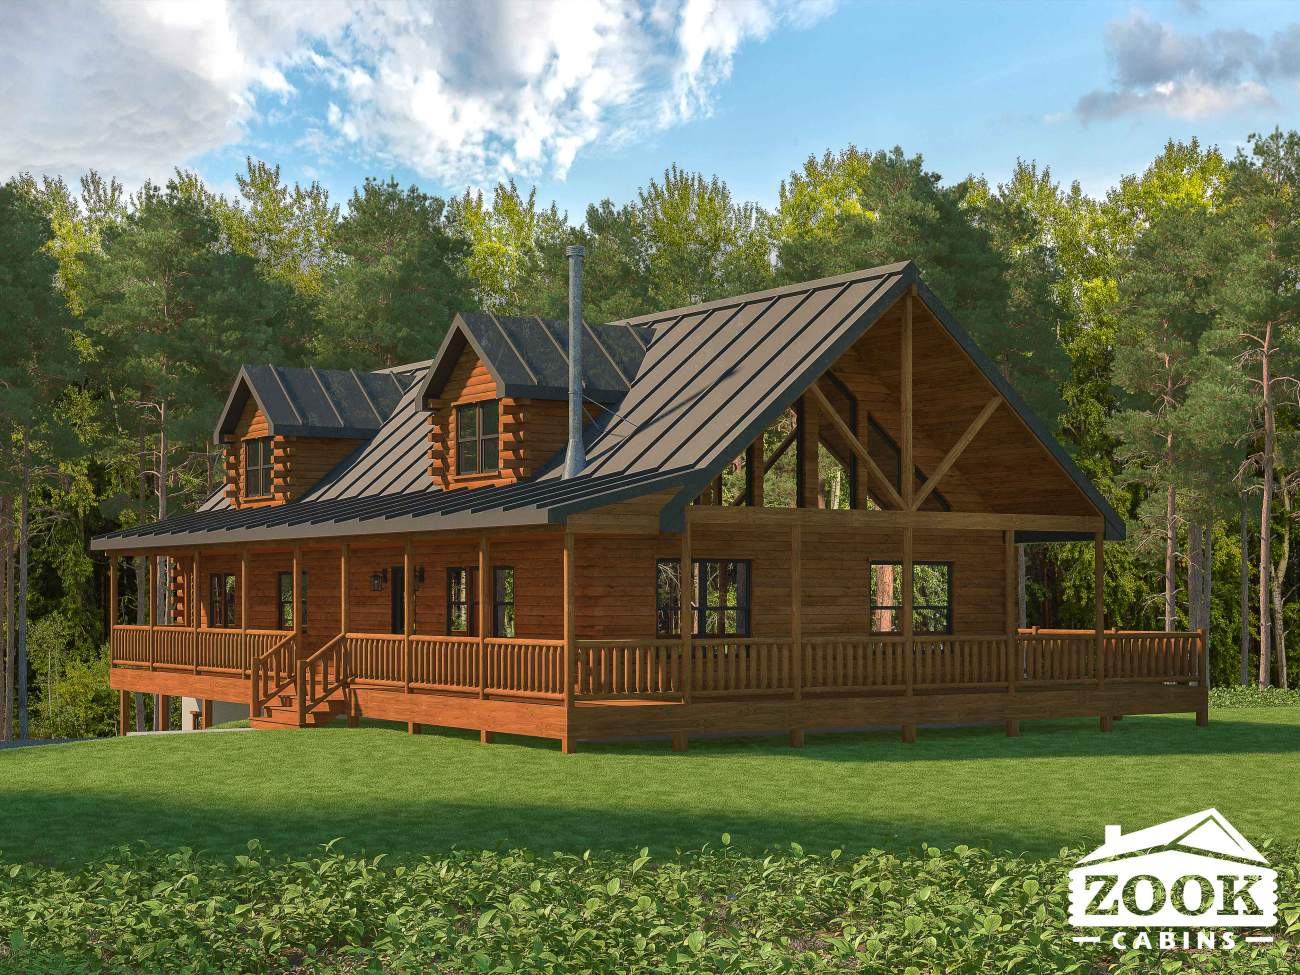 log cabin home with a porch and dormer windows